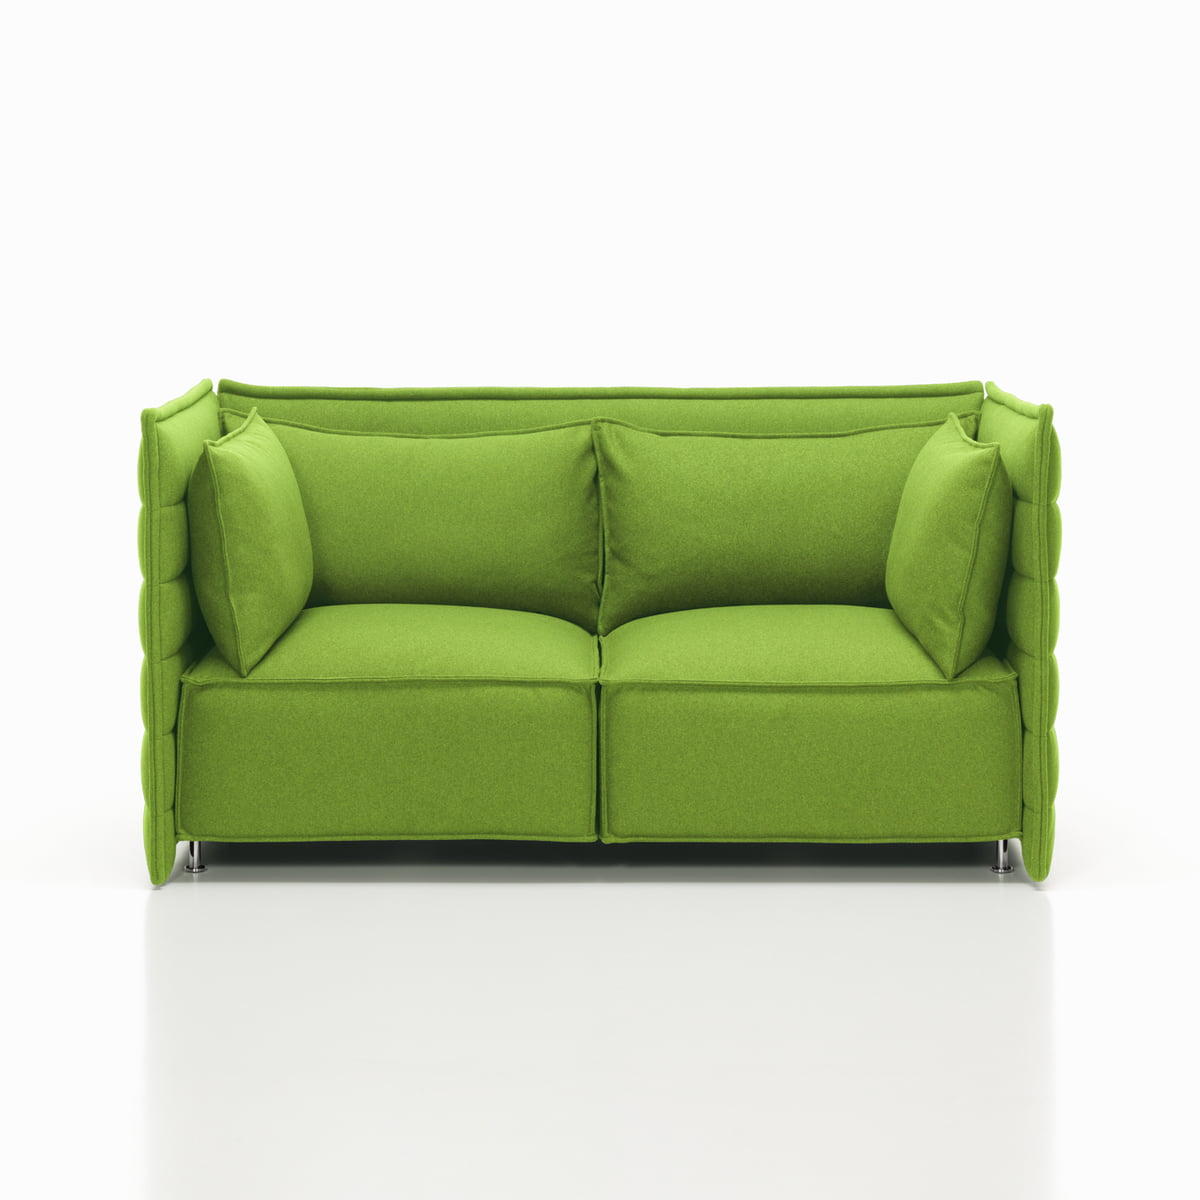 Alcove Plume Sofa By Vitra In The